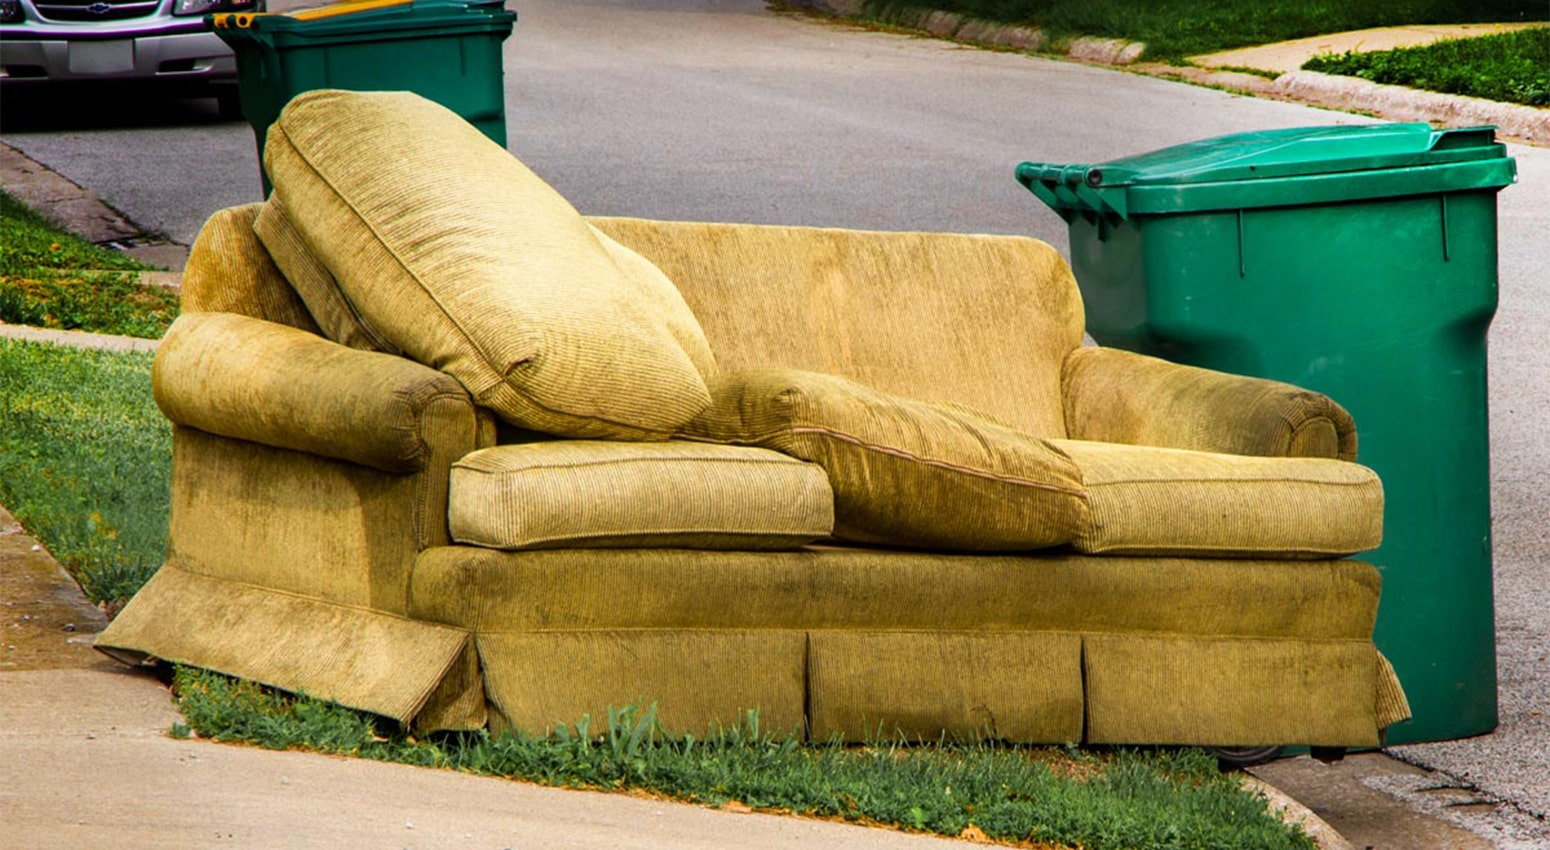 Some Tips On Getting Rid Of Your Old Couch Jiffy Junk